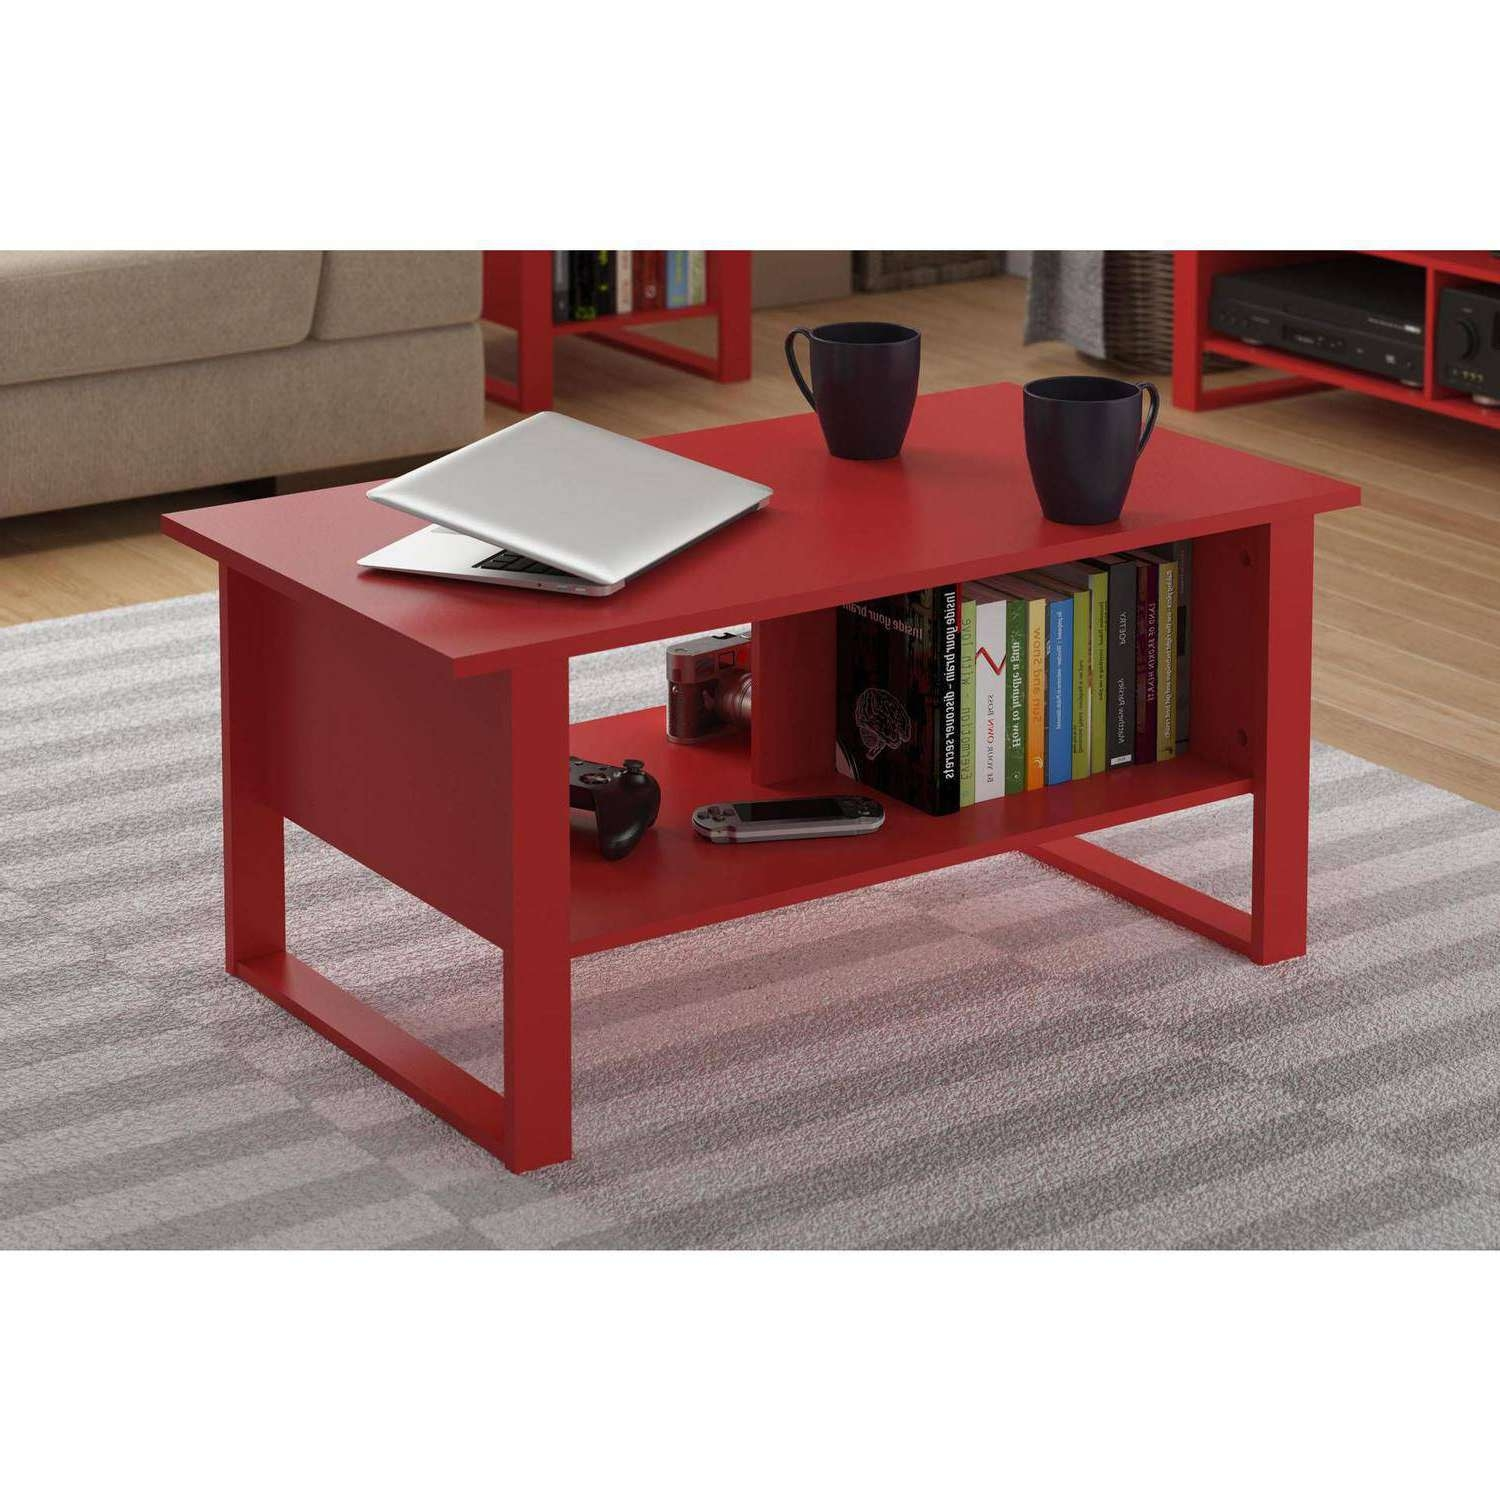 Widely Used Cd Storage Coffee Tables For Best Choice Products Home Lift Top Coffee Table Modern Furniture W (View 20 of 20)